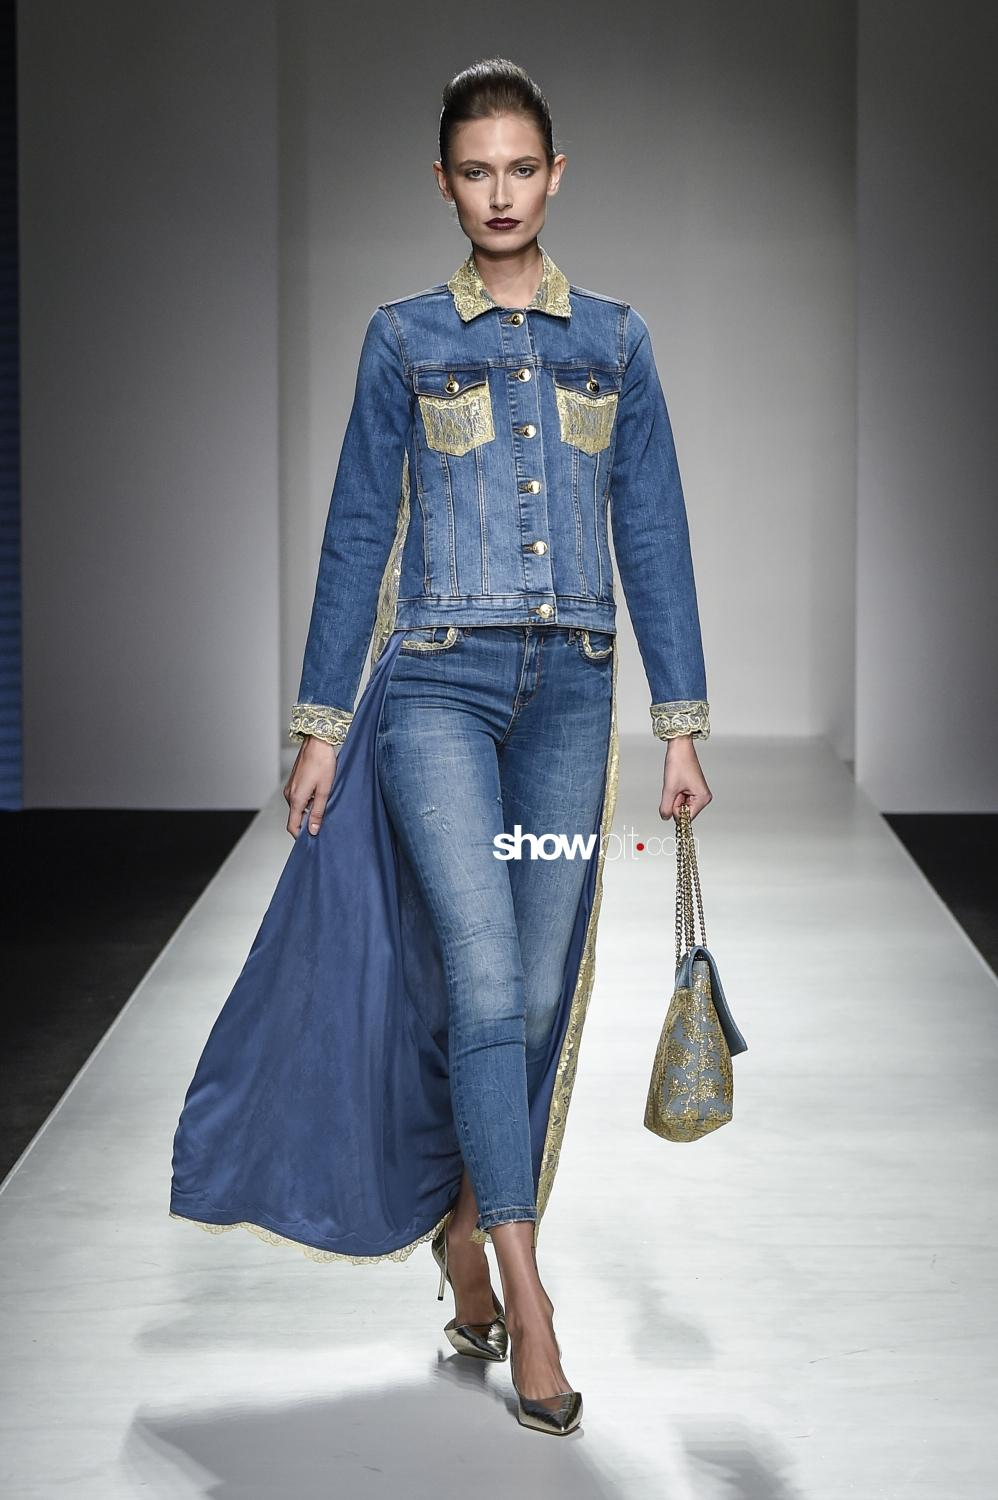 JEANS COUTURE READY TO WEAR DUBAI S/S '17